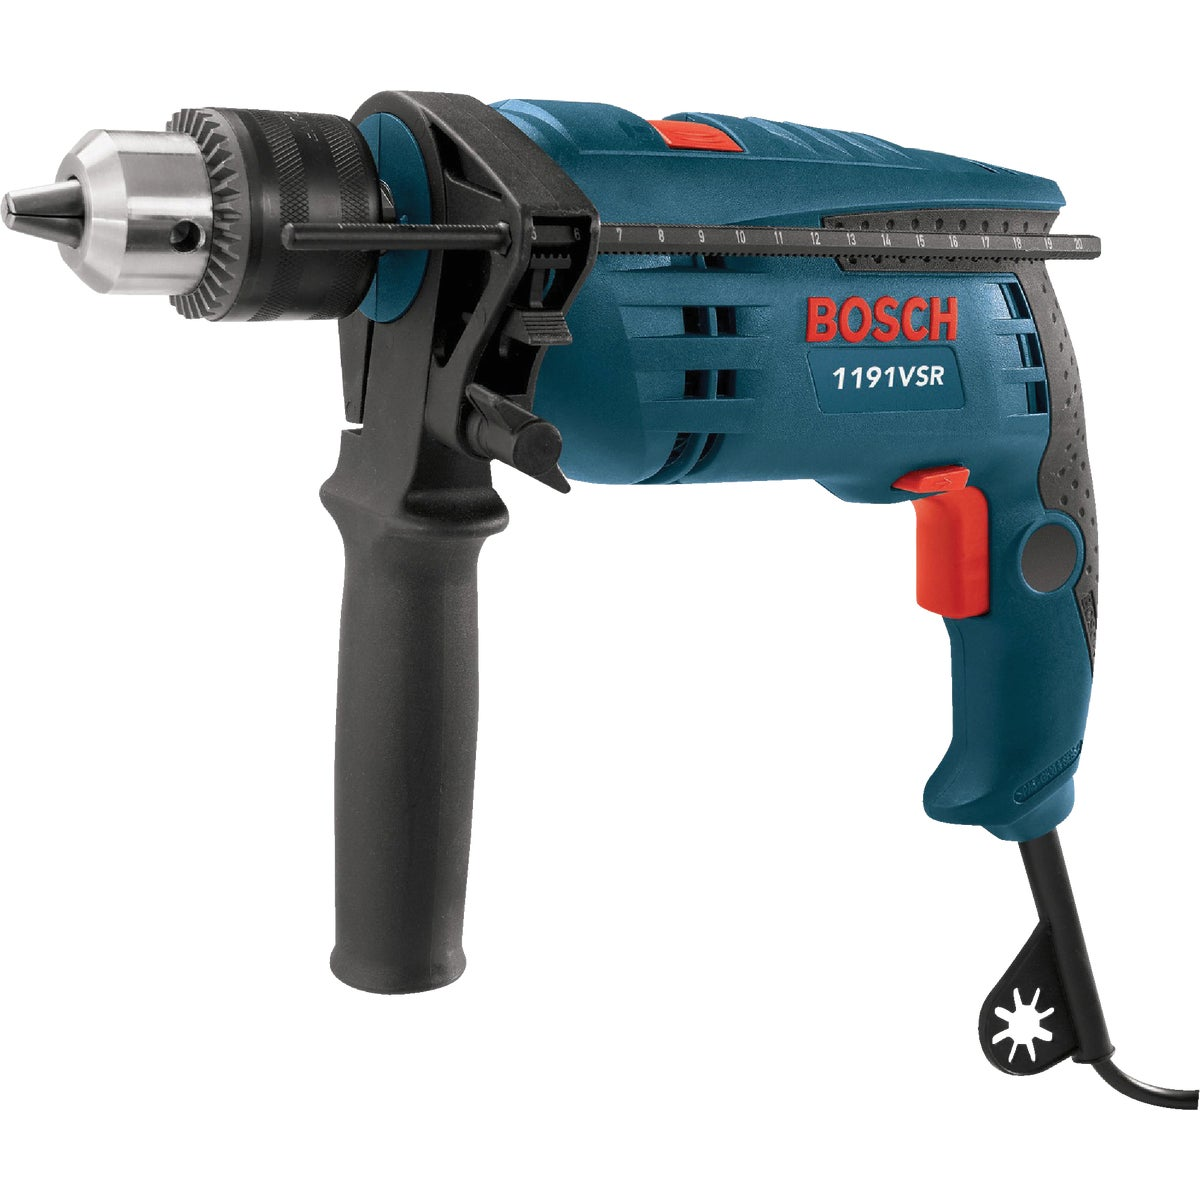 "1/2"" 3-JAW HAMMER DRILL - 1191VSRK by Robt Bosch Tool Corp"